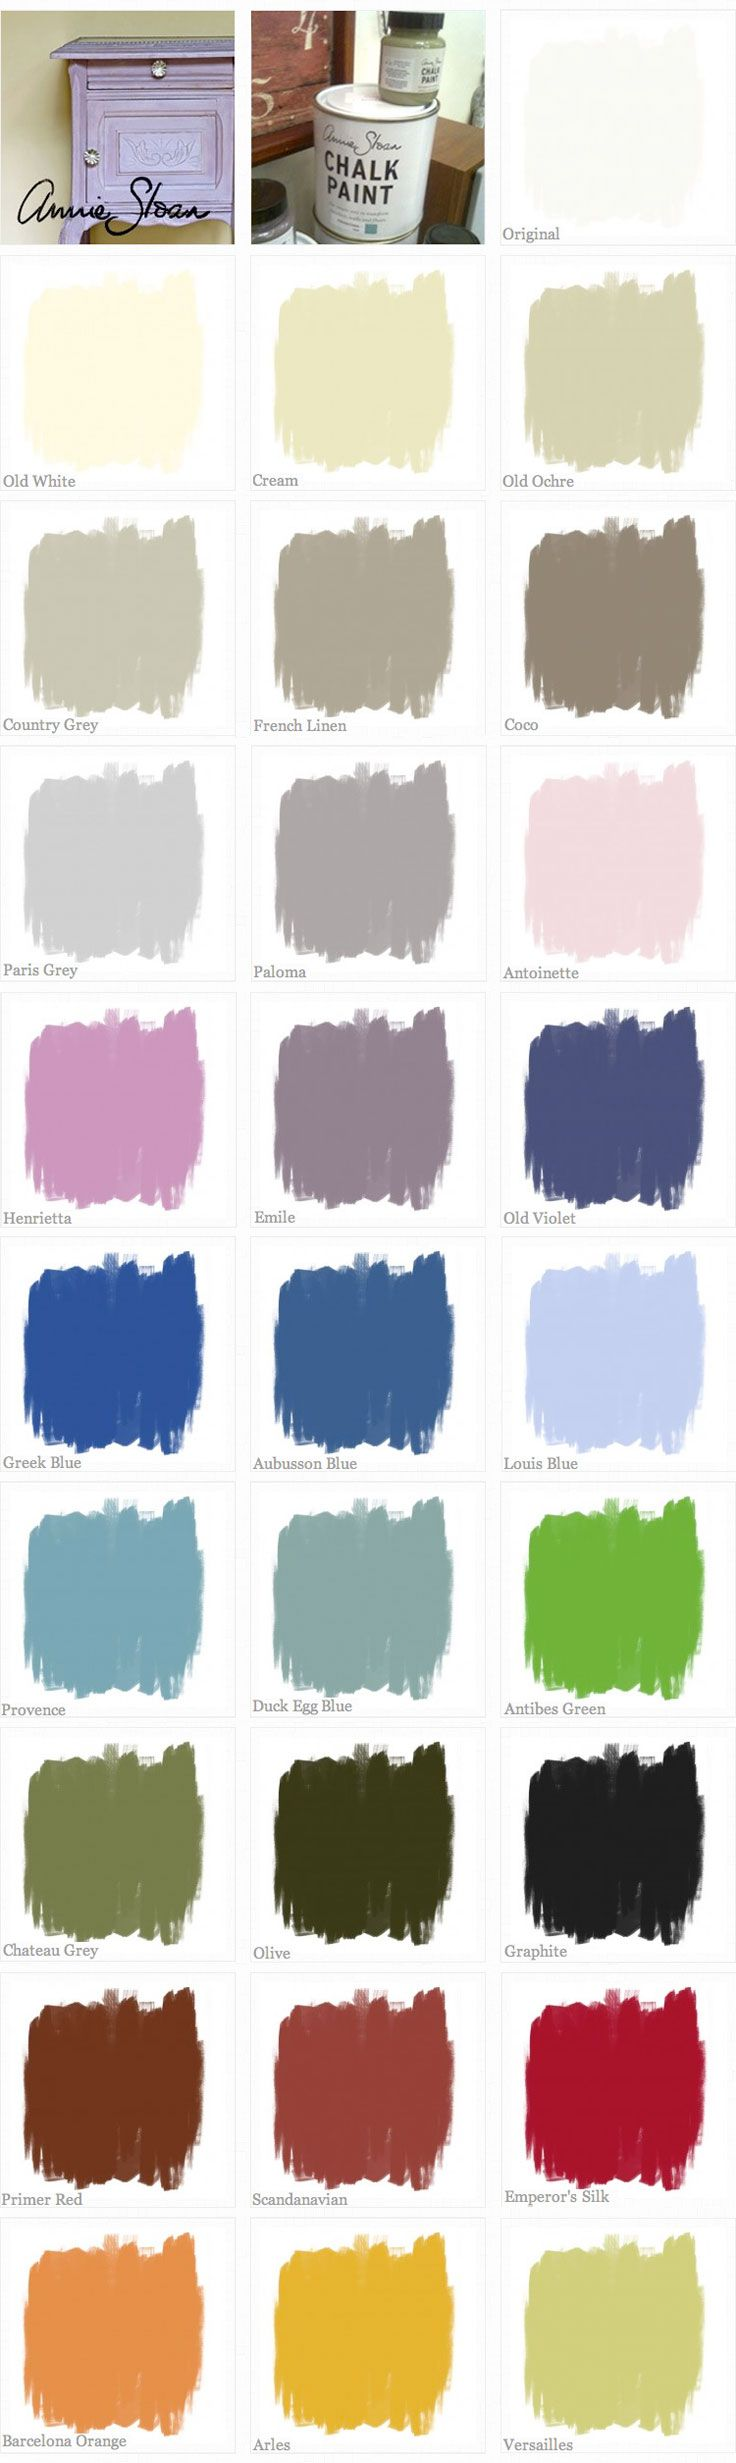 chalk paint annie sloan chalk paint color swatches missing napoleonic blue a dark blue. Black Bedroom Furniture Sets. Home Design Ideas